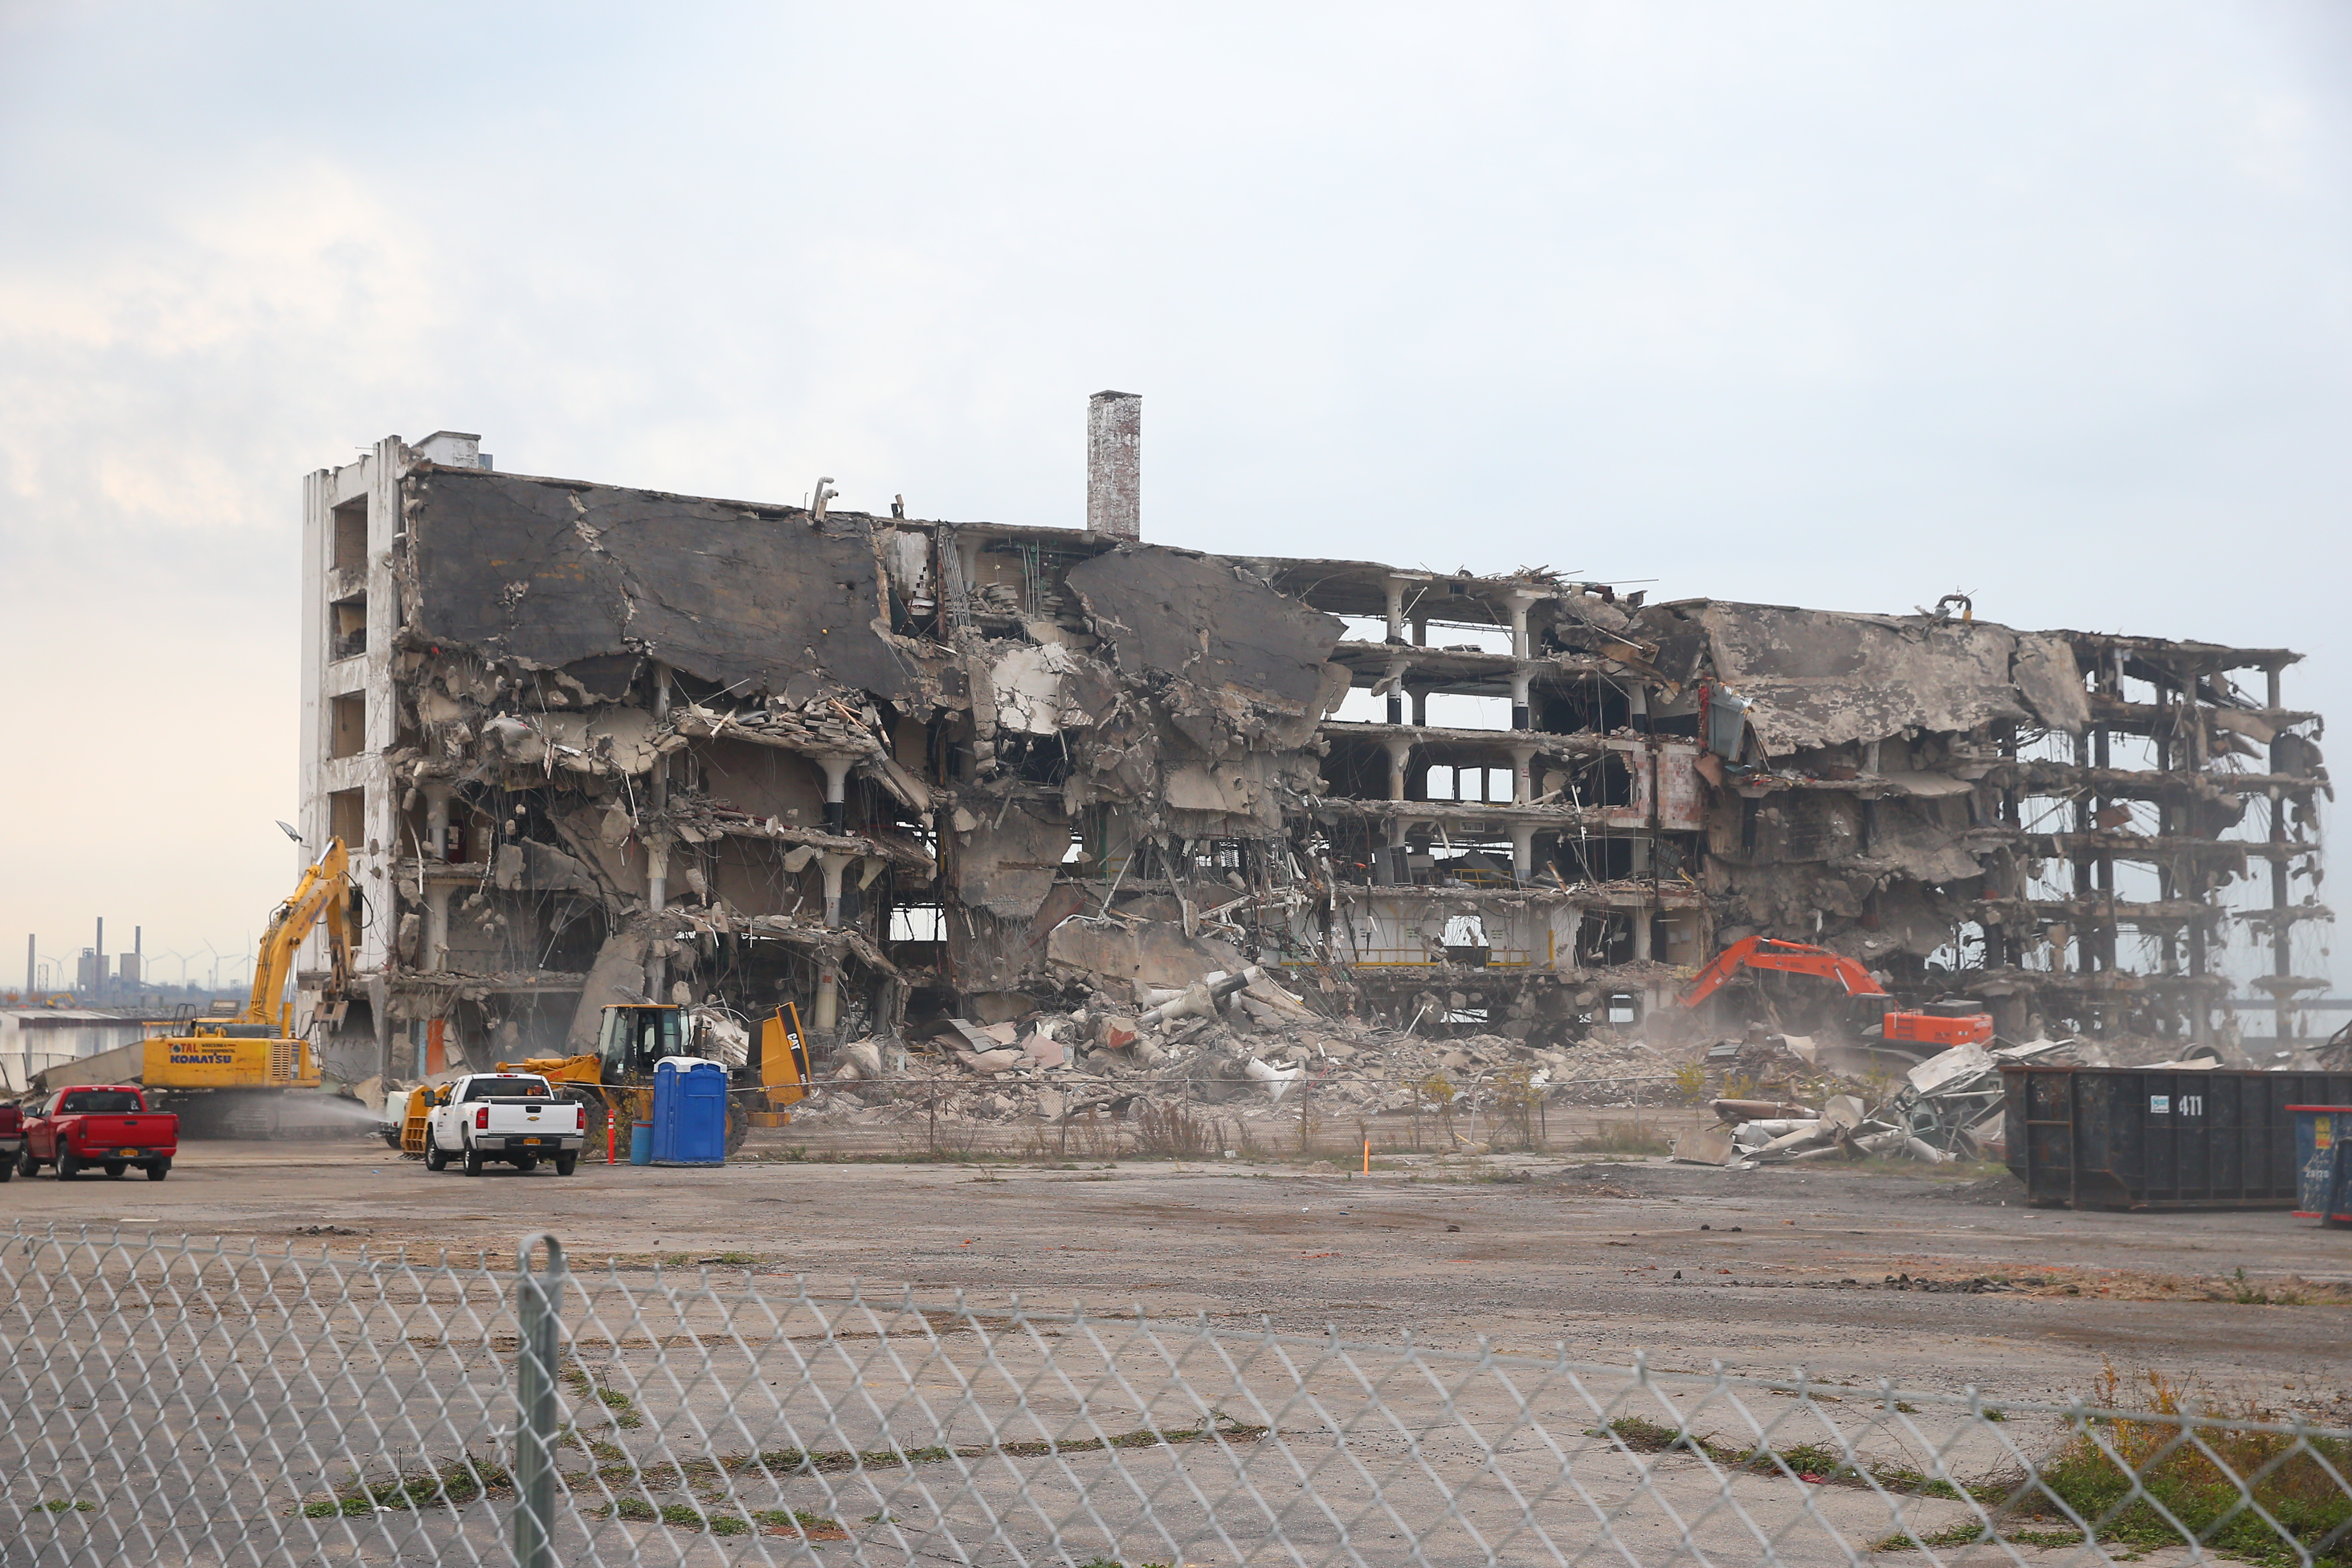 A view of demolition work at the former Freezer Queen building a few days before a section of concrete wall collapsed into Lake Erie. (John Hickey/Buffalo News file photo)